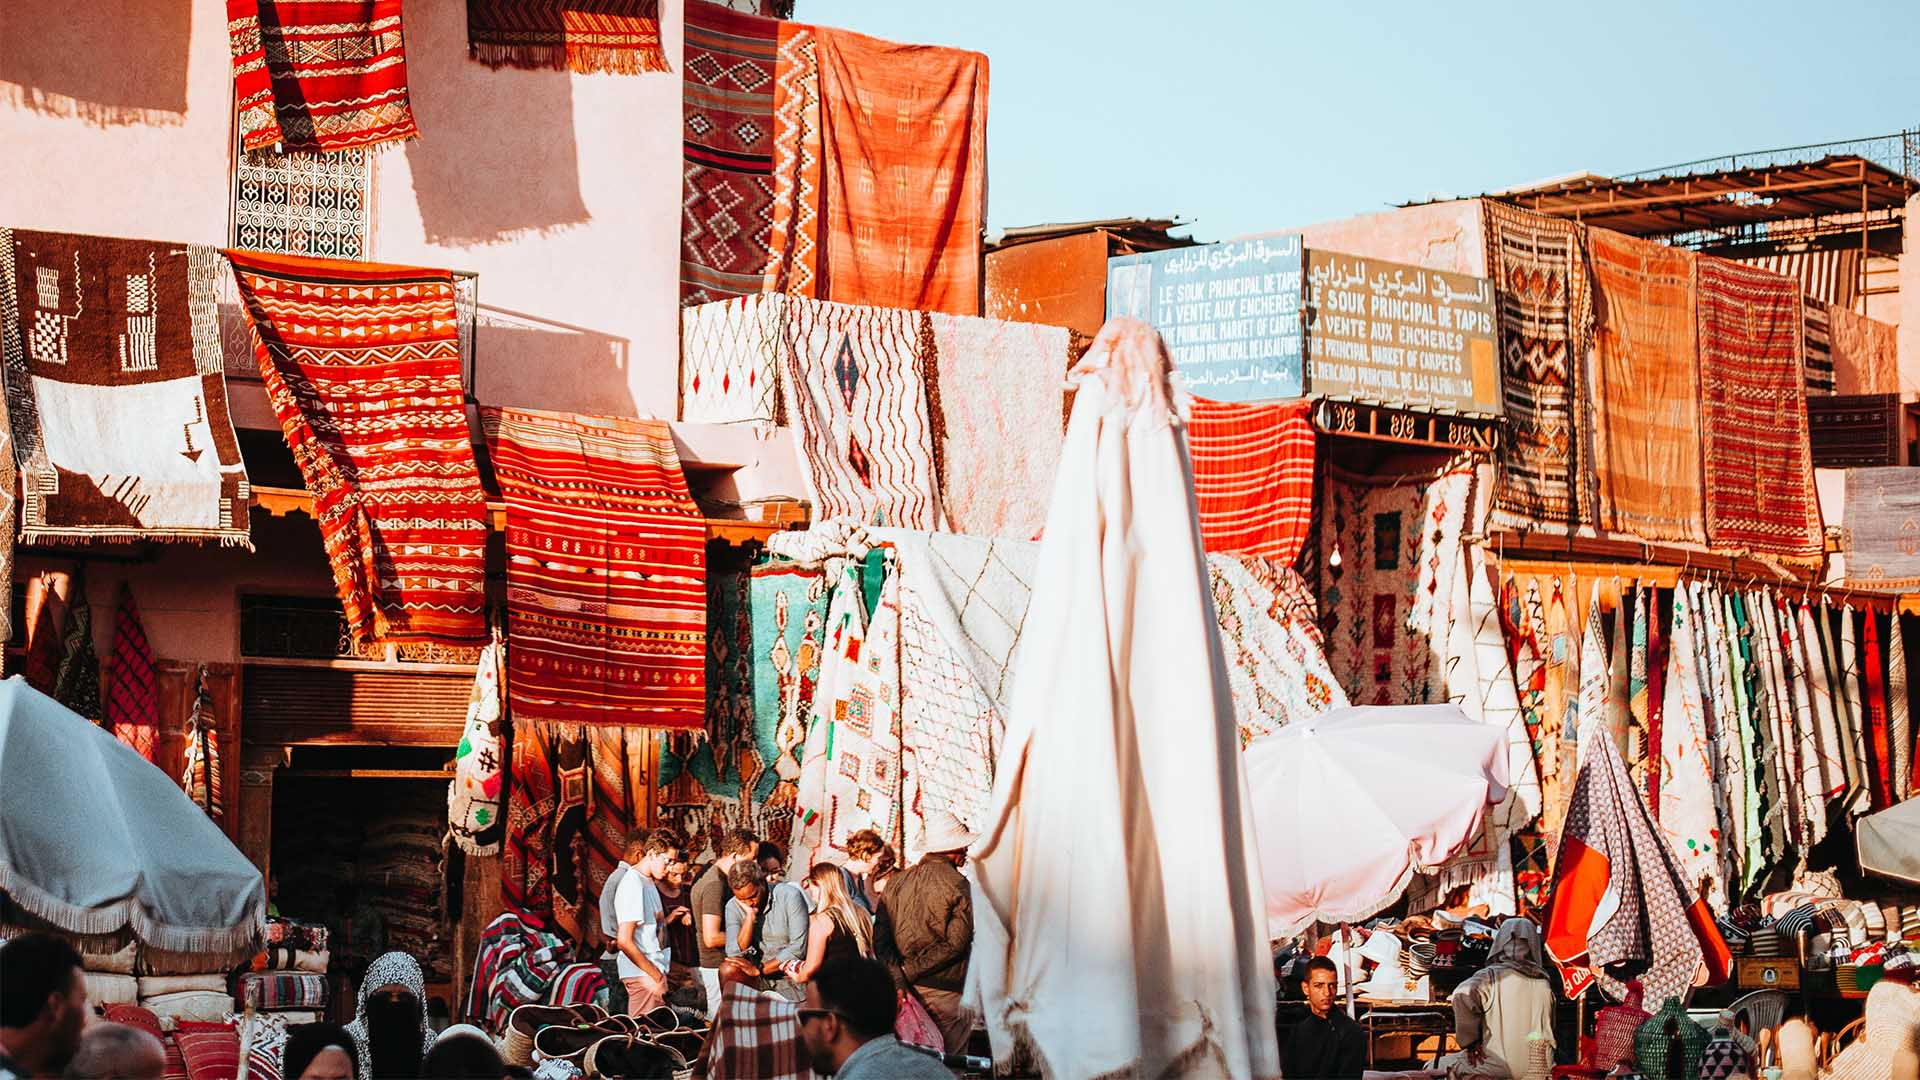 The art of treasure hunting in Marrakech